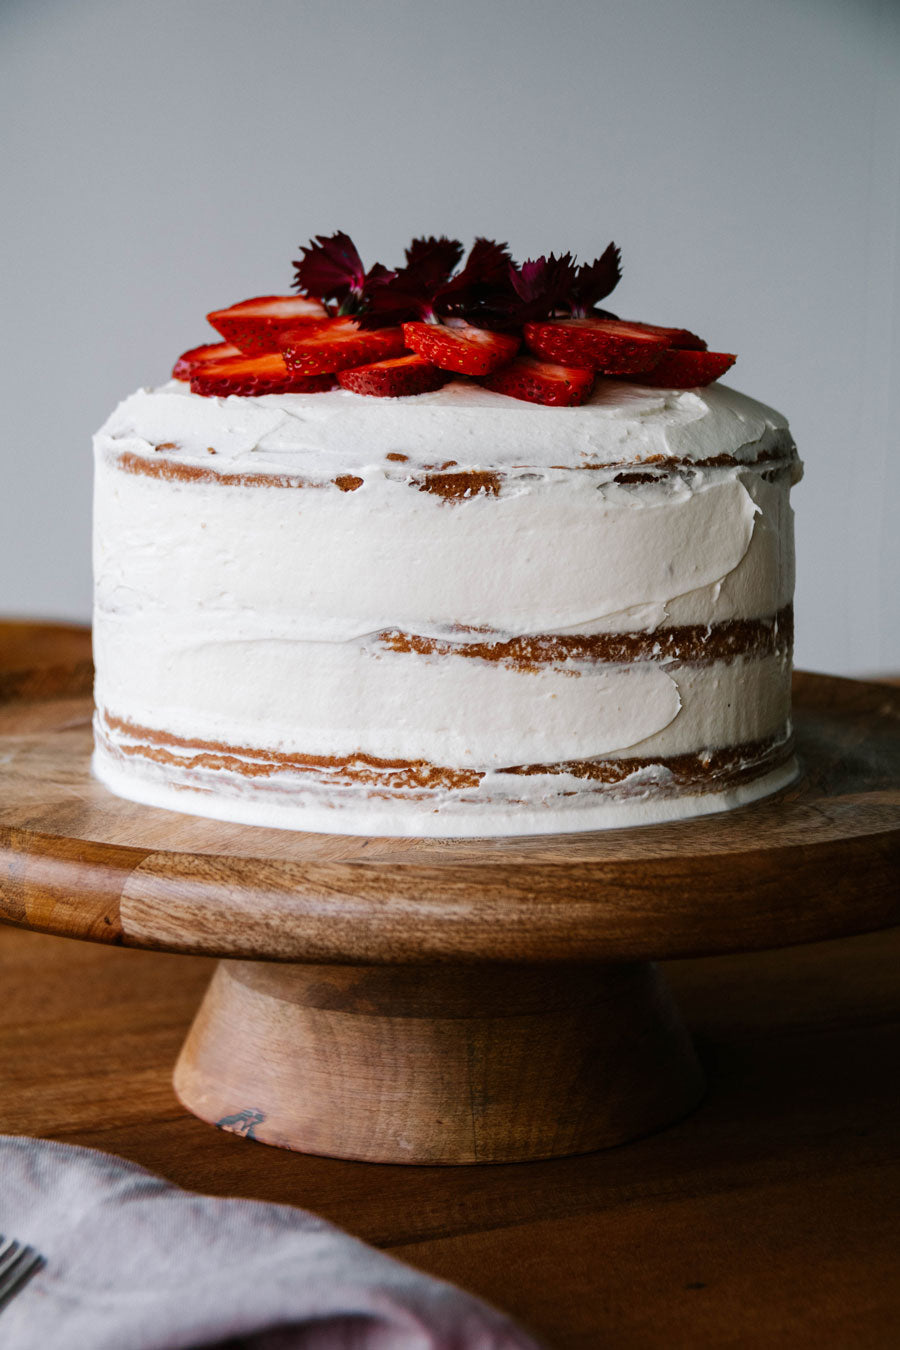 Smor-Kitchen-Strawberry-and-Cream-Naked-Tiered-Cake-Recipe